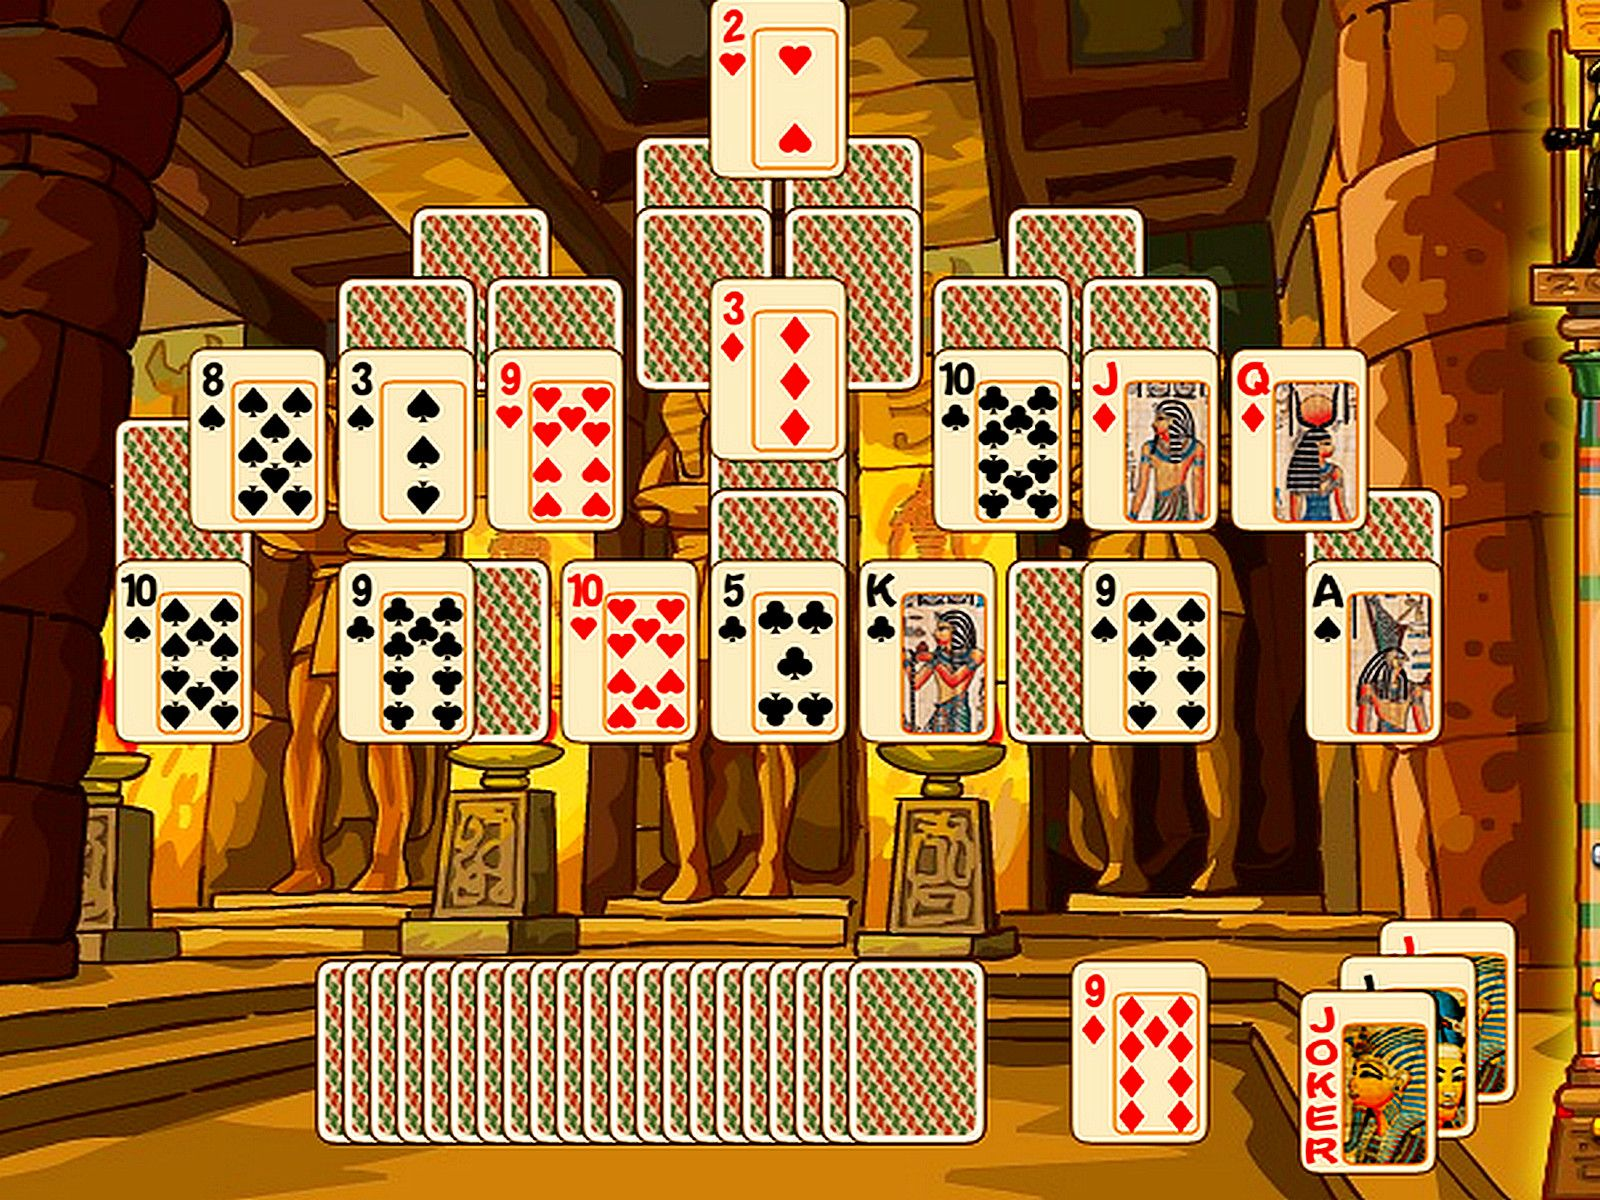 Game of the day Egypt Pyramid Solitaire Combine 2 cards to